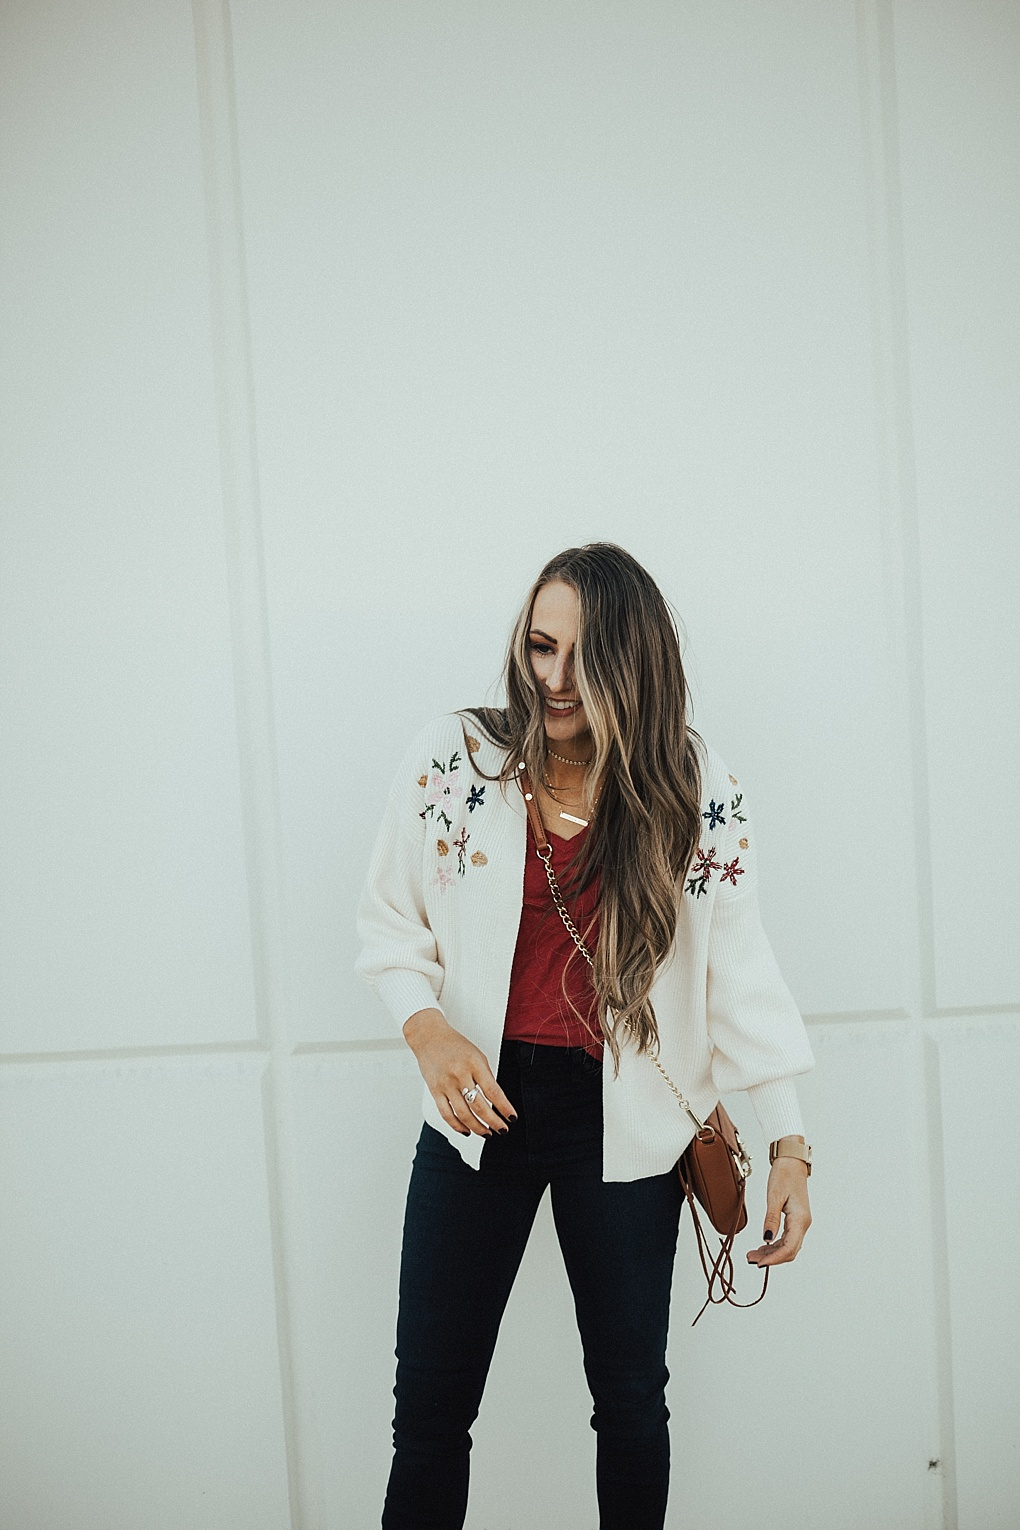 The Embroidered Cardigan Your Grandma Has & You Need Too by popular Utah style blogger Dani Marie